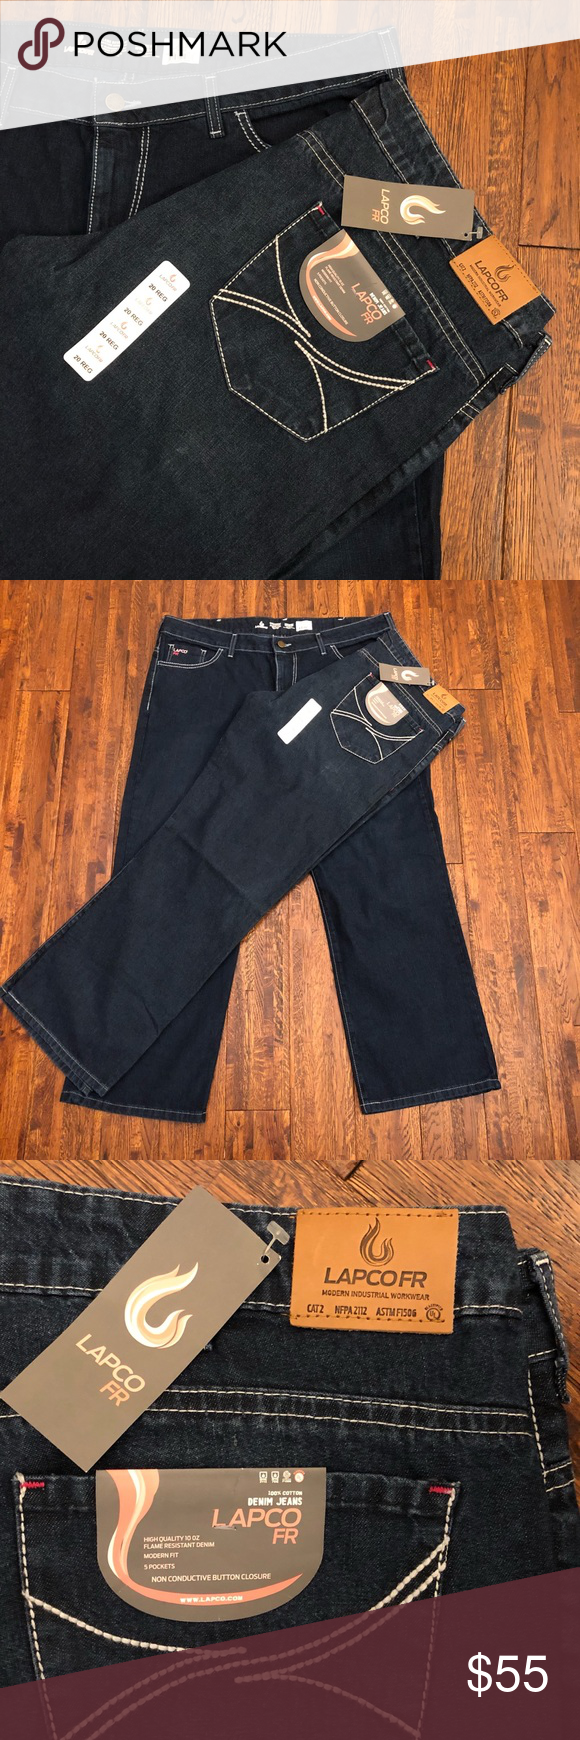 6bb6e8afe91b LAPCO FR Rated Jeans